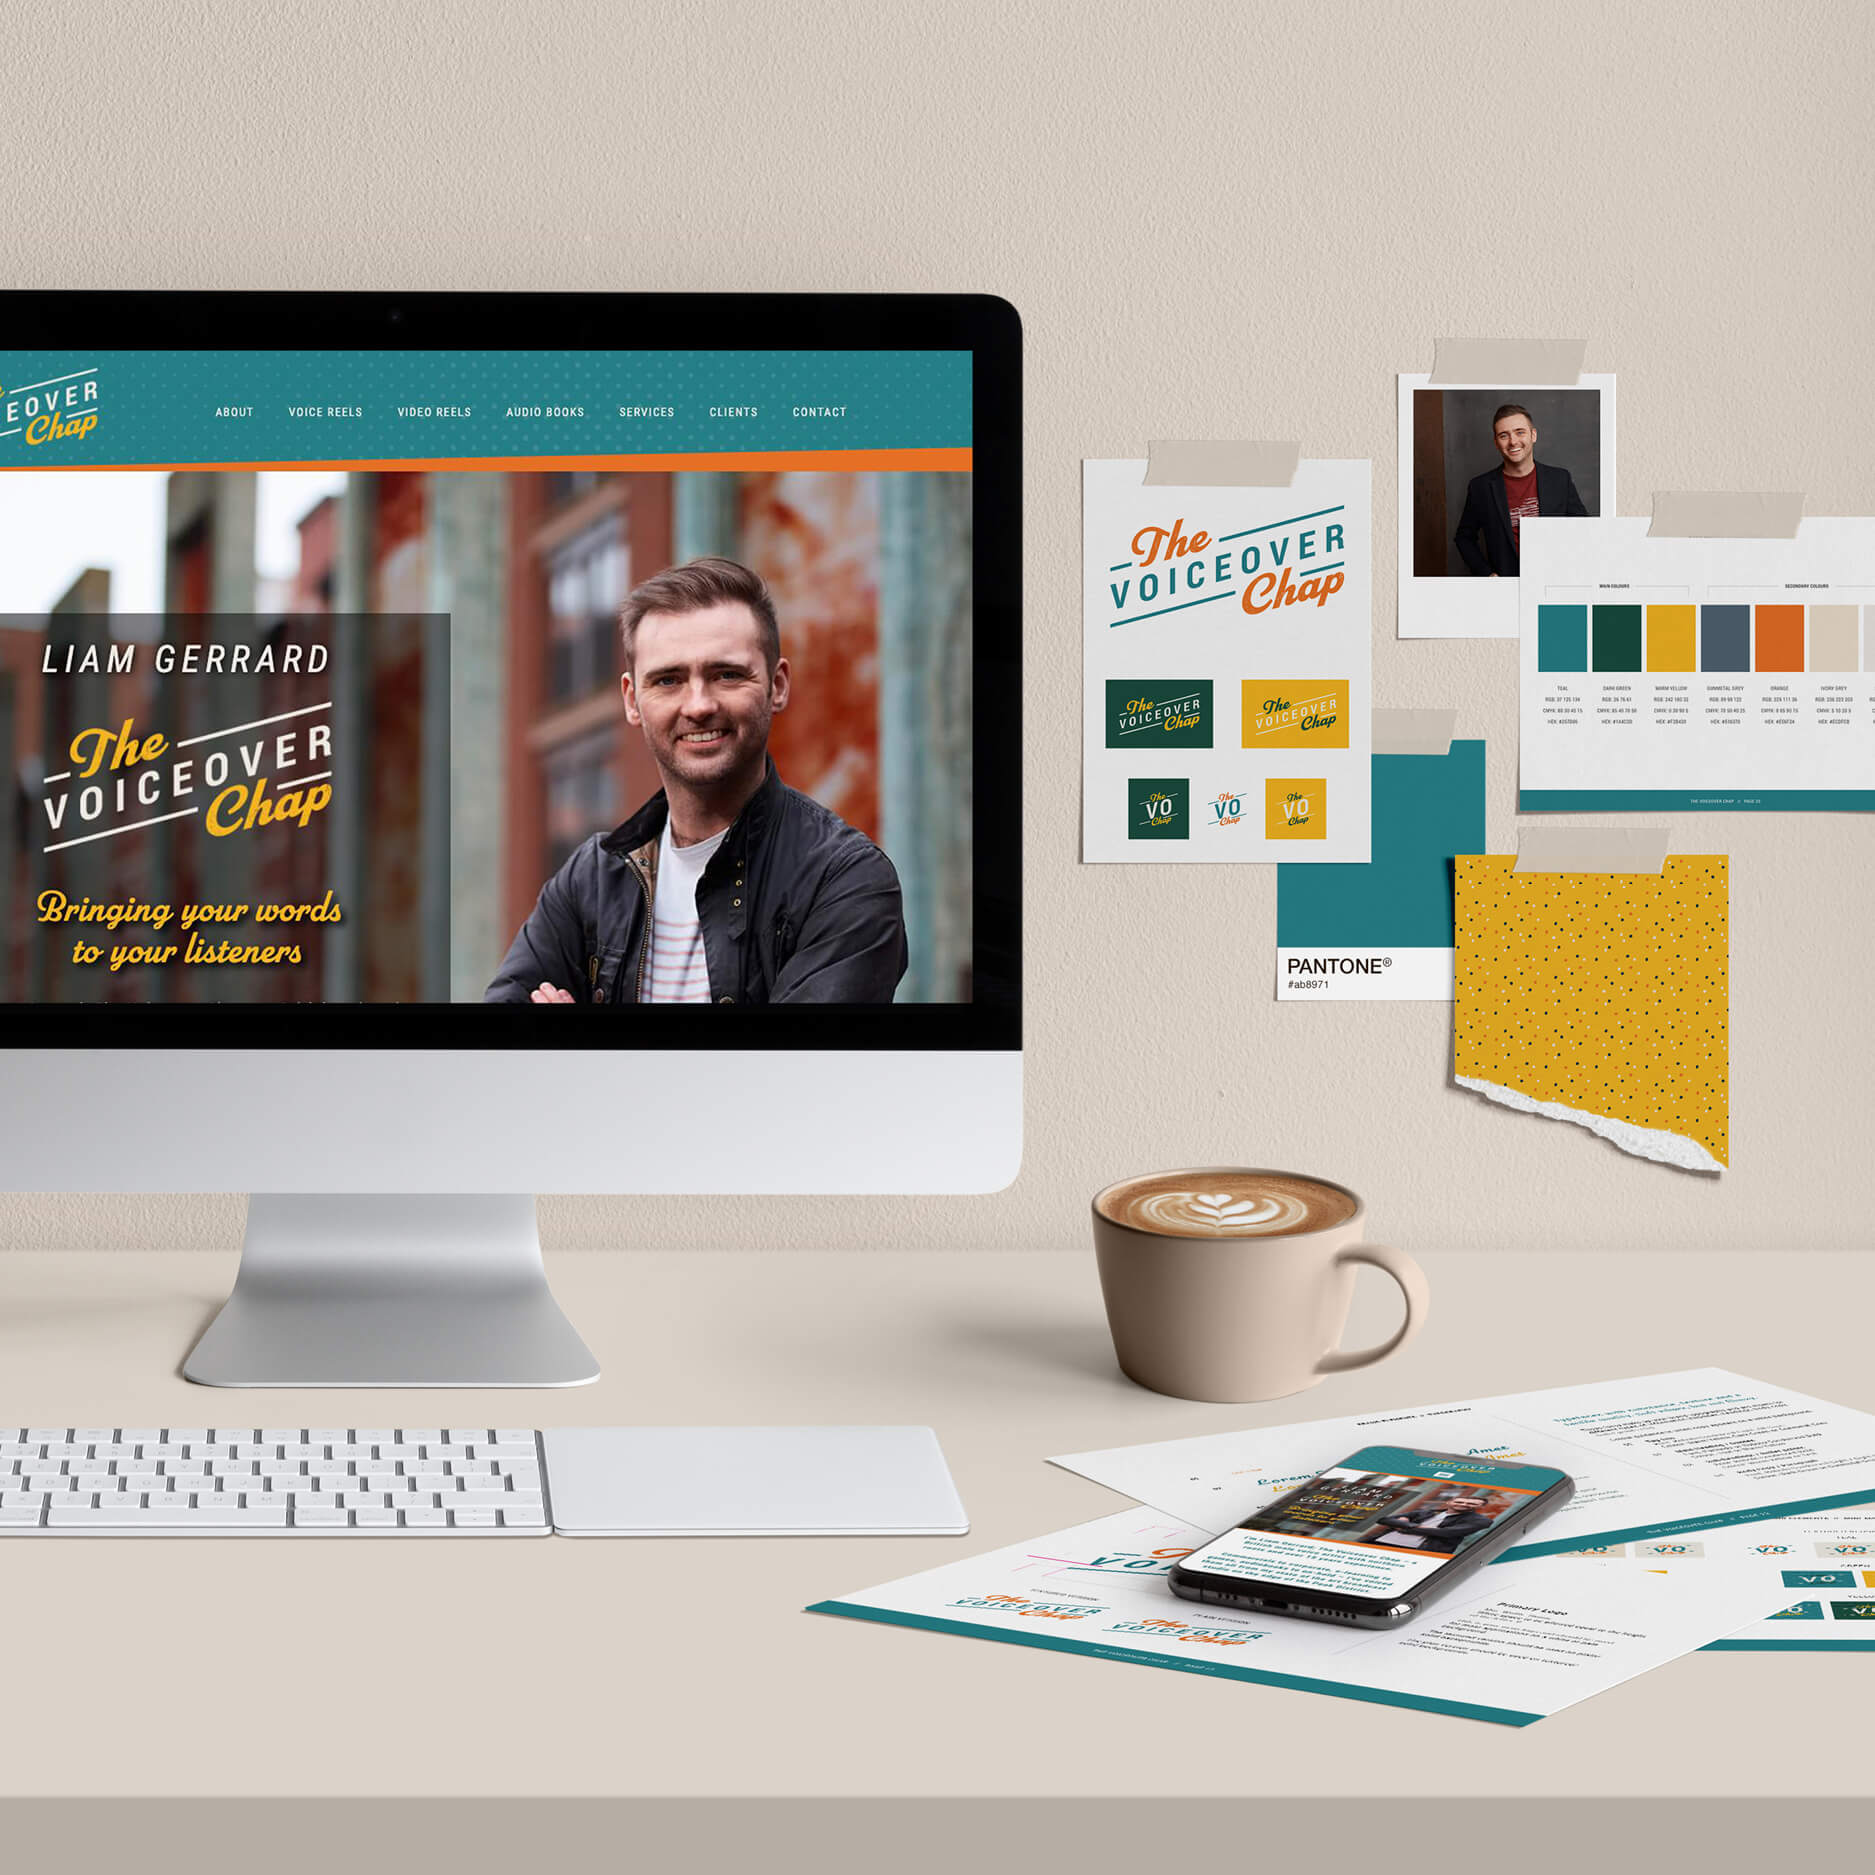 The Voiceover Chap Liam Gerrard branding, logo and website design